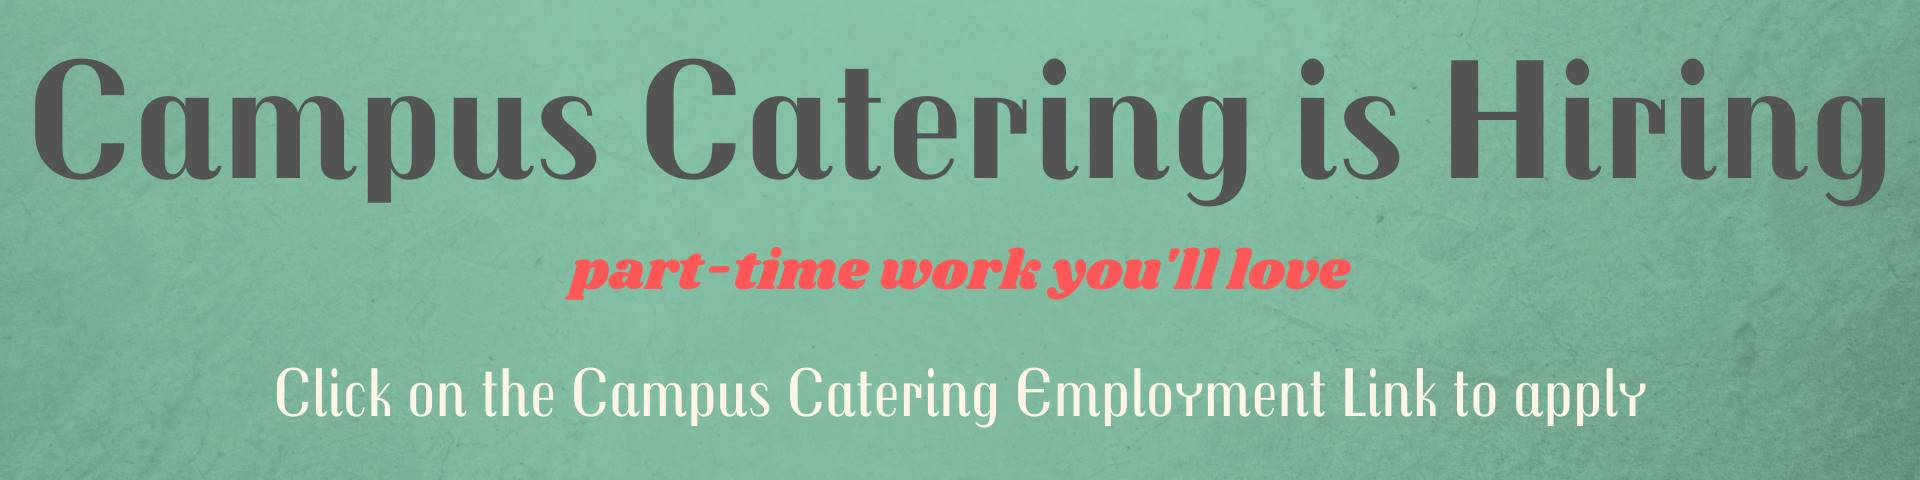 campus catering is hiring- click on the employment link for more information